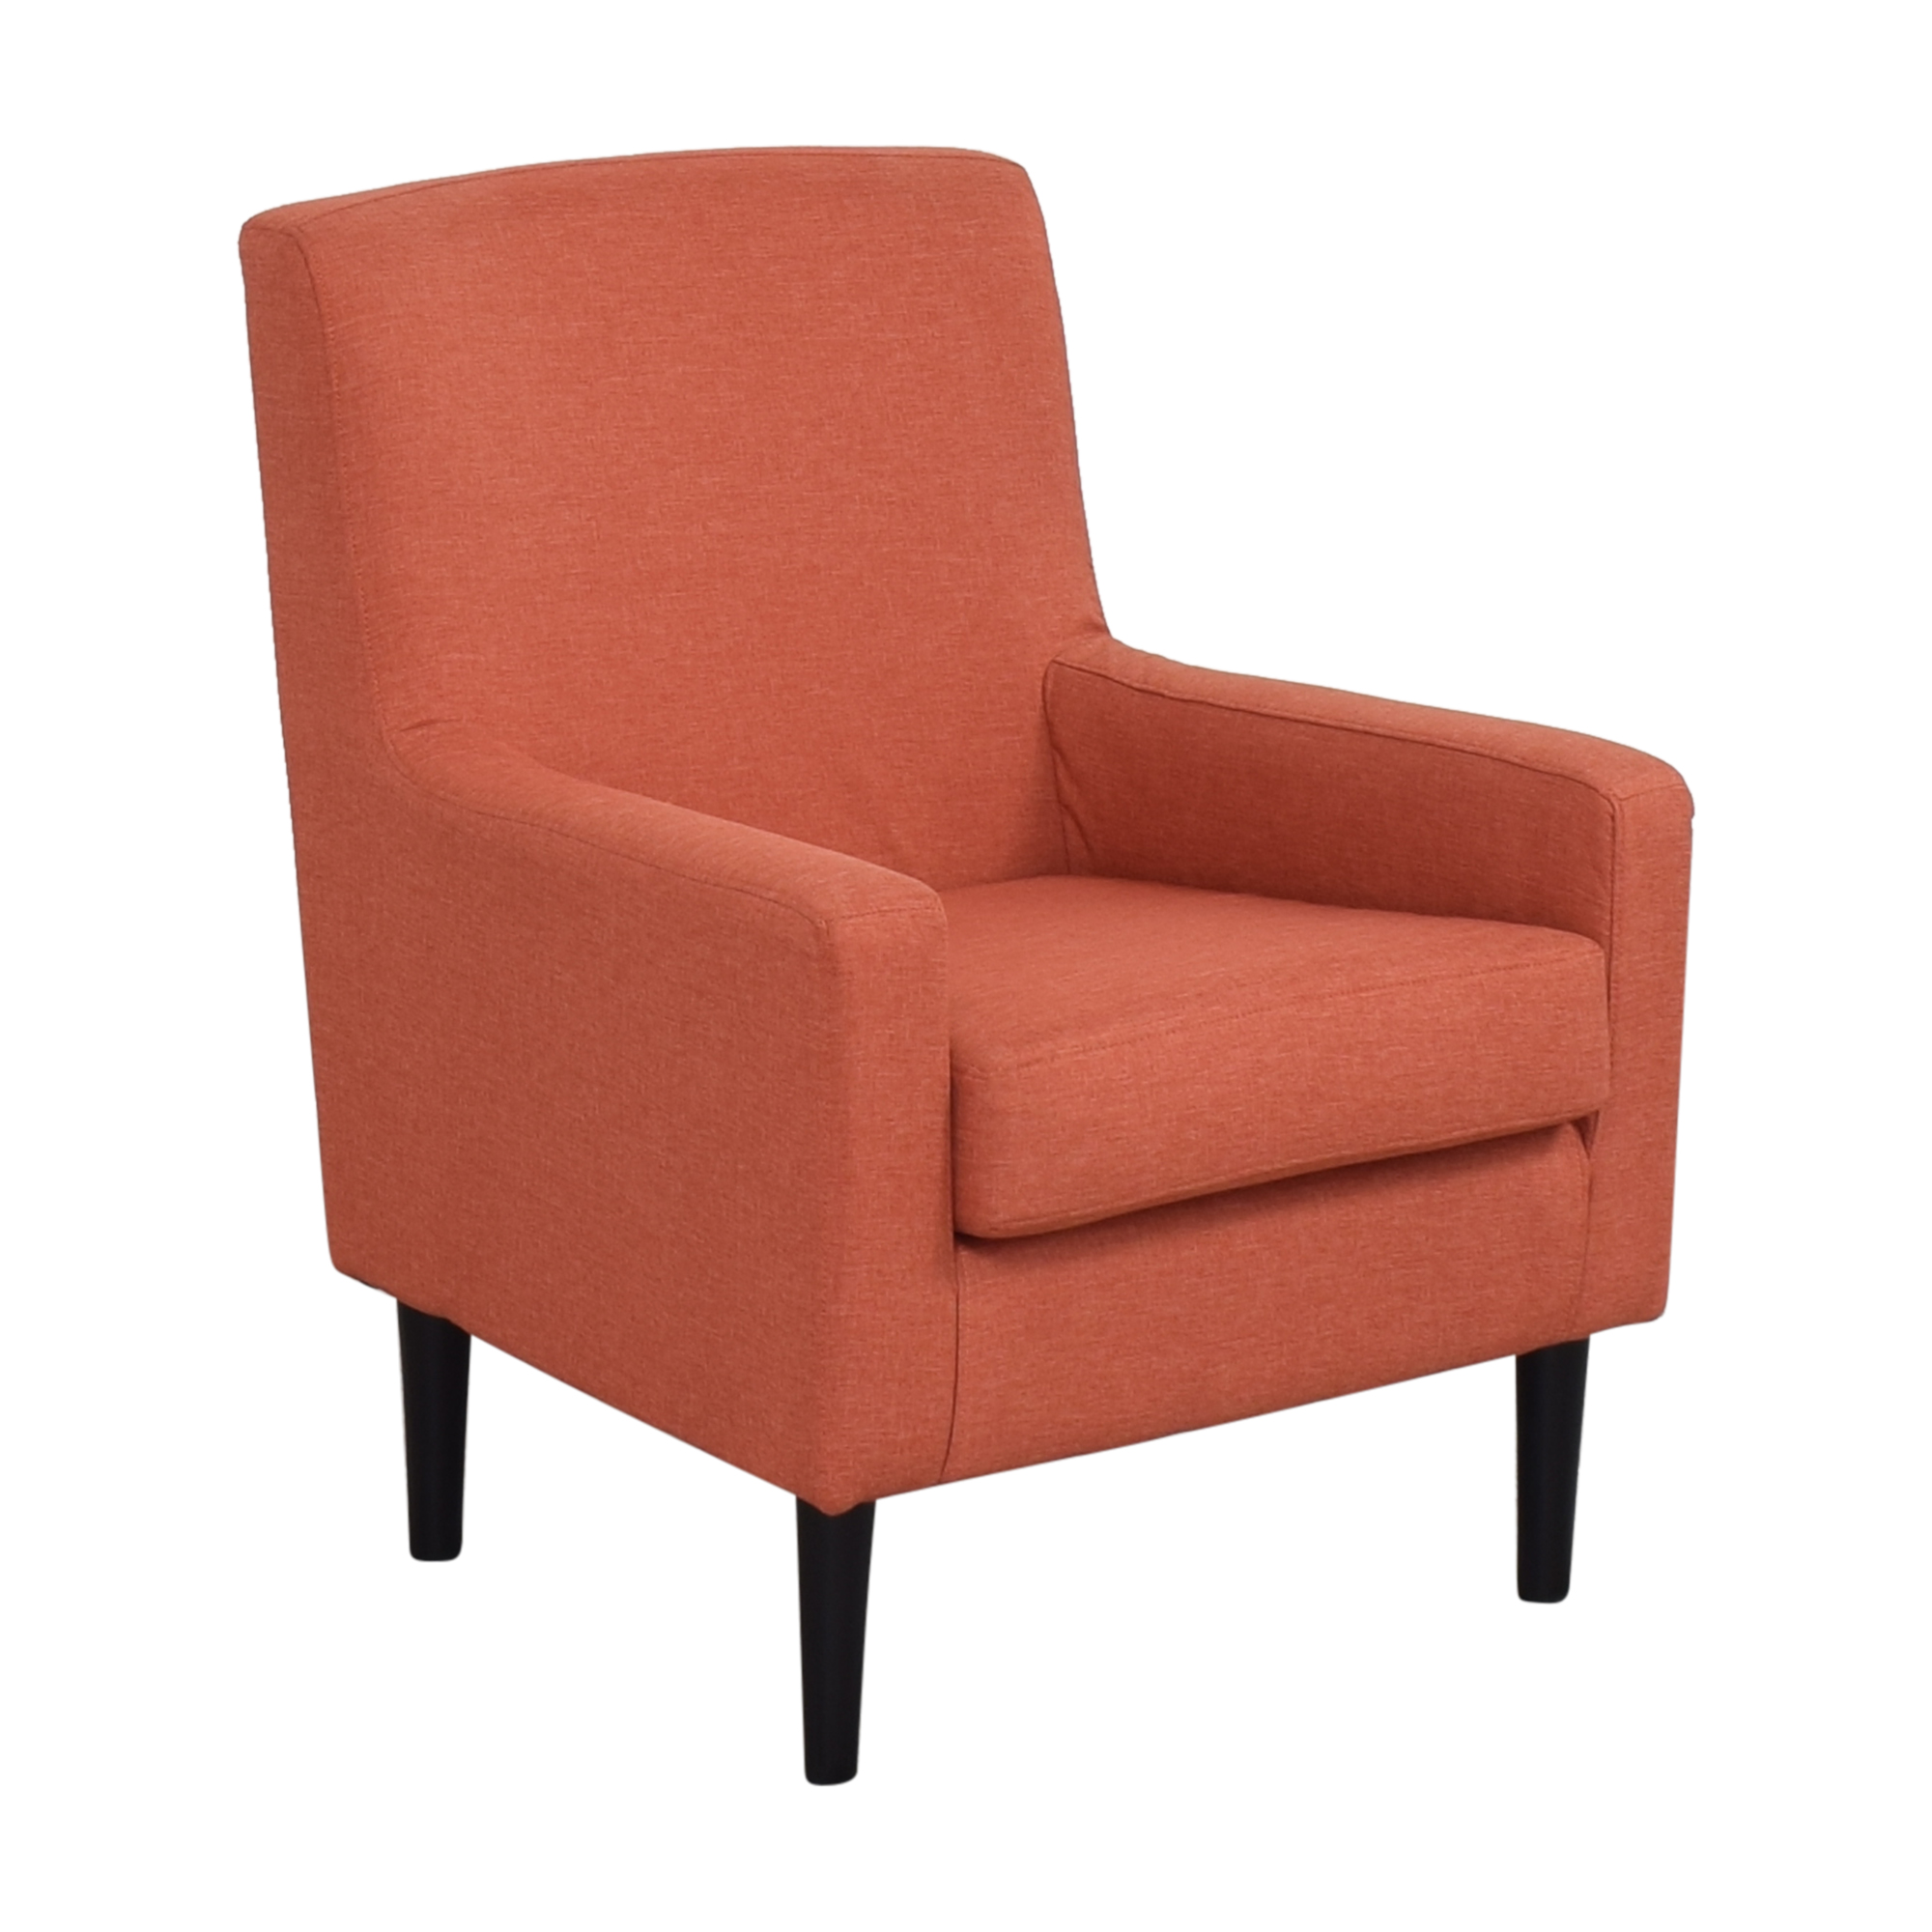 Accent Arm Chair for sale